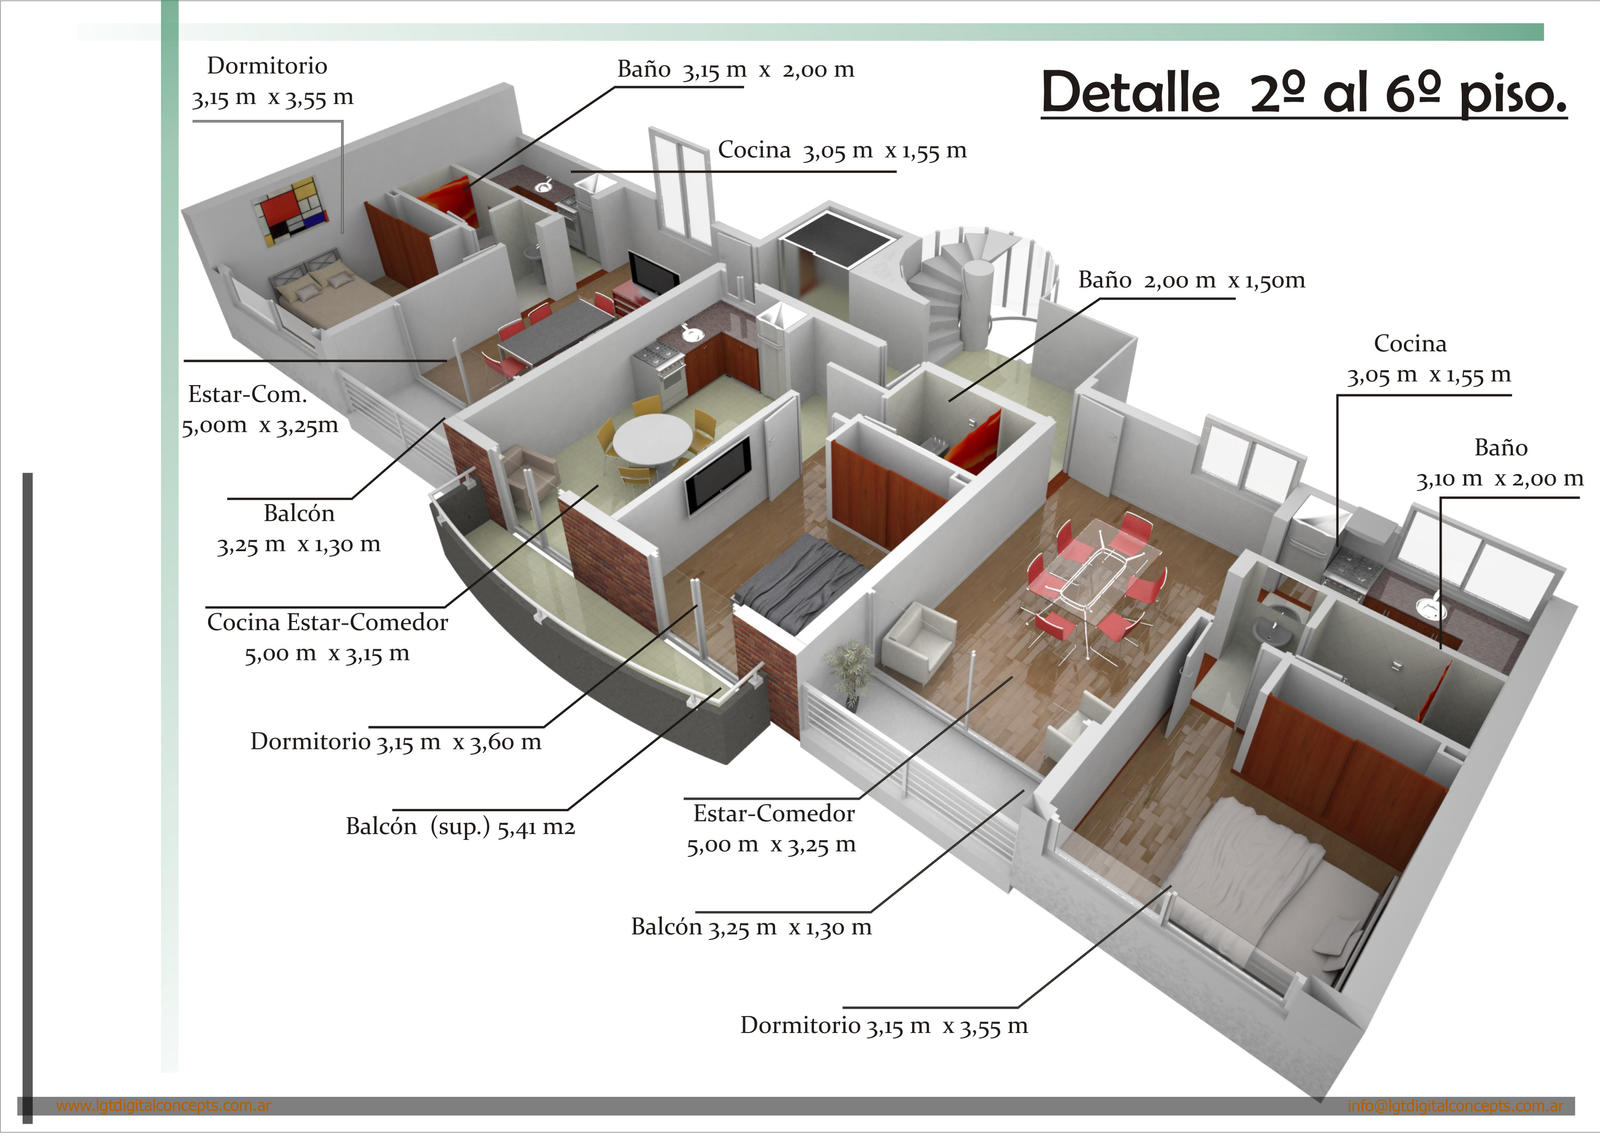 Architectural styles of house plans, home plans and floor plans